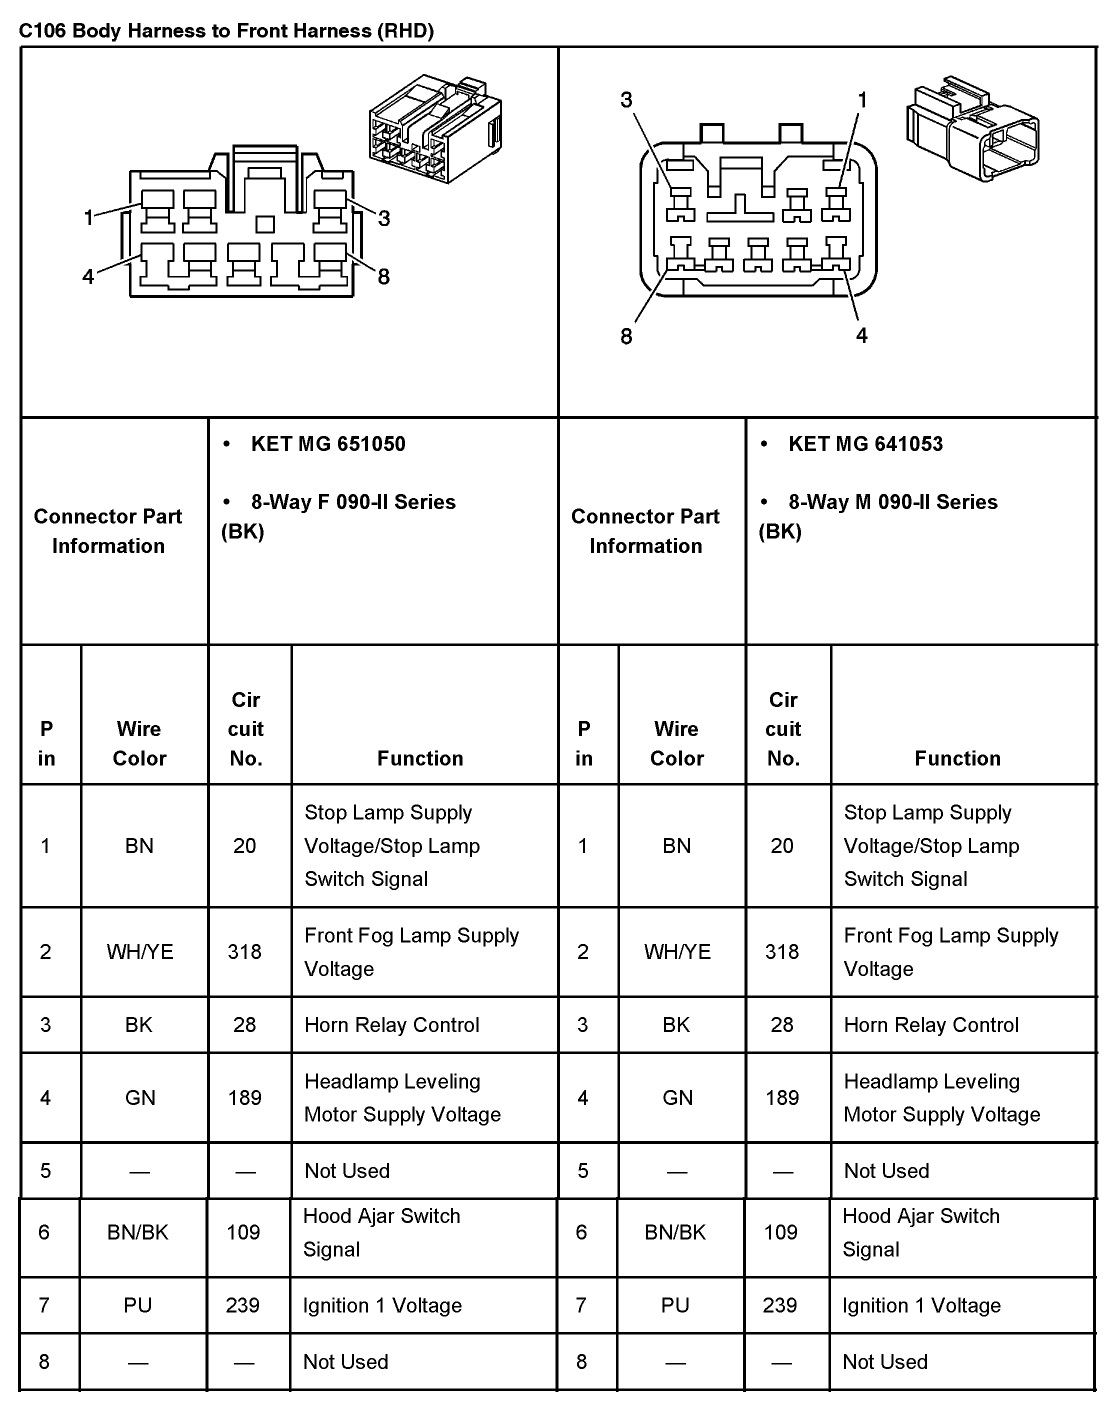 7331d1383704576 2005 aveo master connector list diagrams conn3 jpg 2005 aveo master connector list and diagrams 2004 chevy aveo spark plug wire diagram at soozxer.org